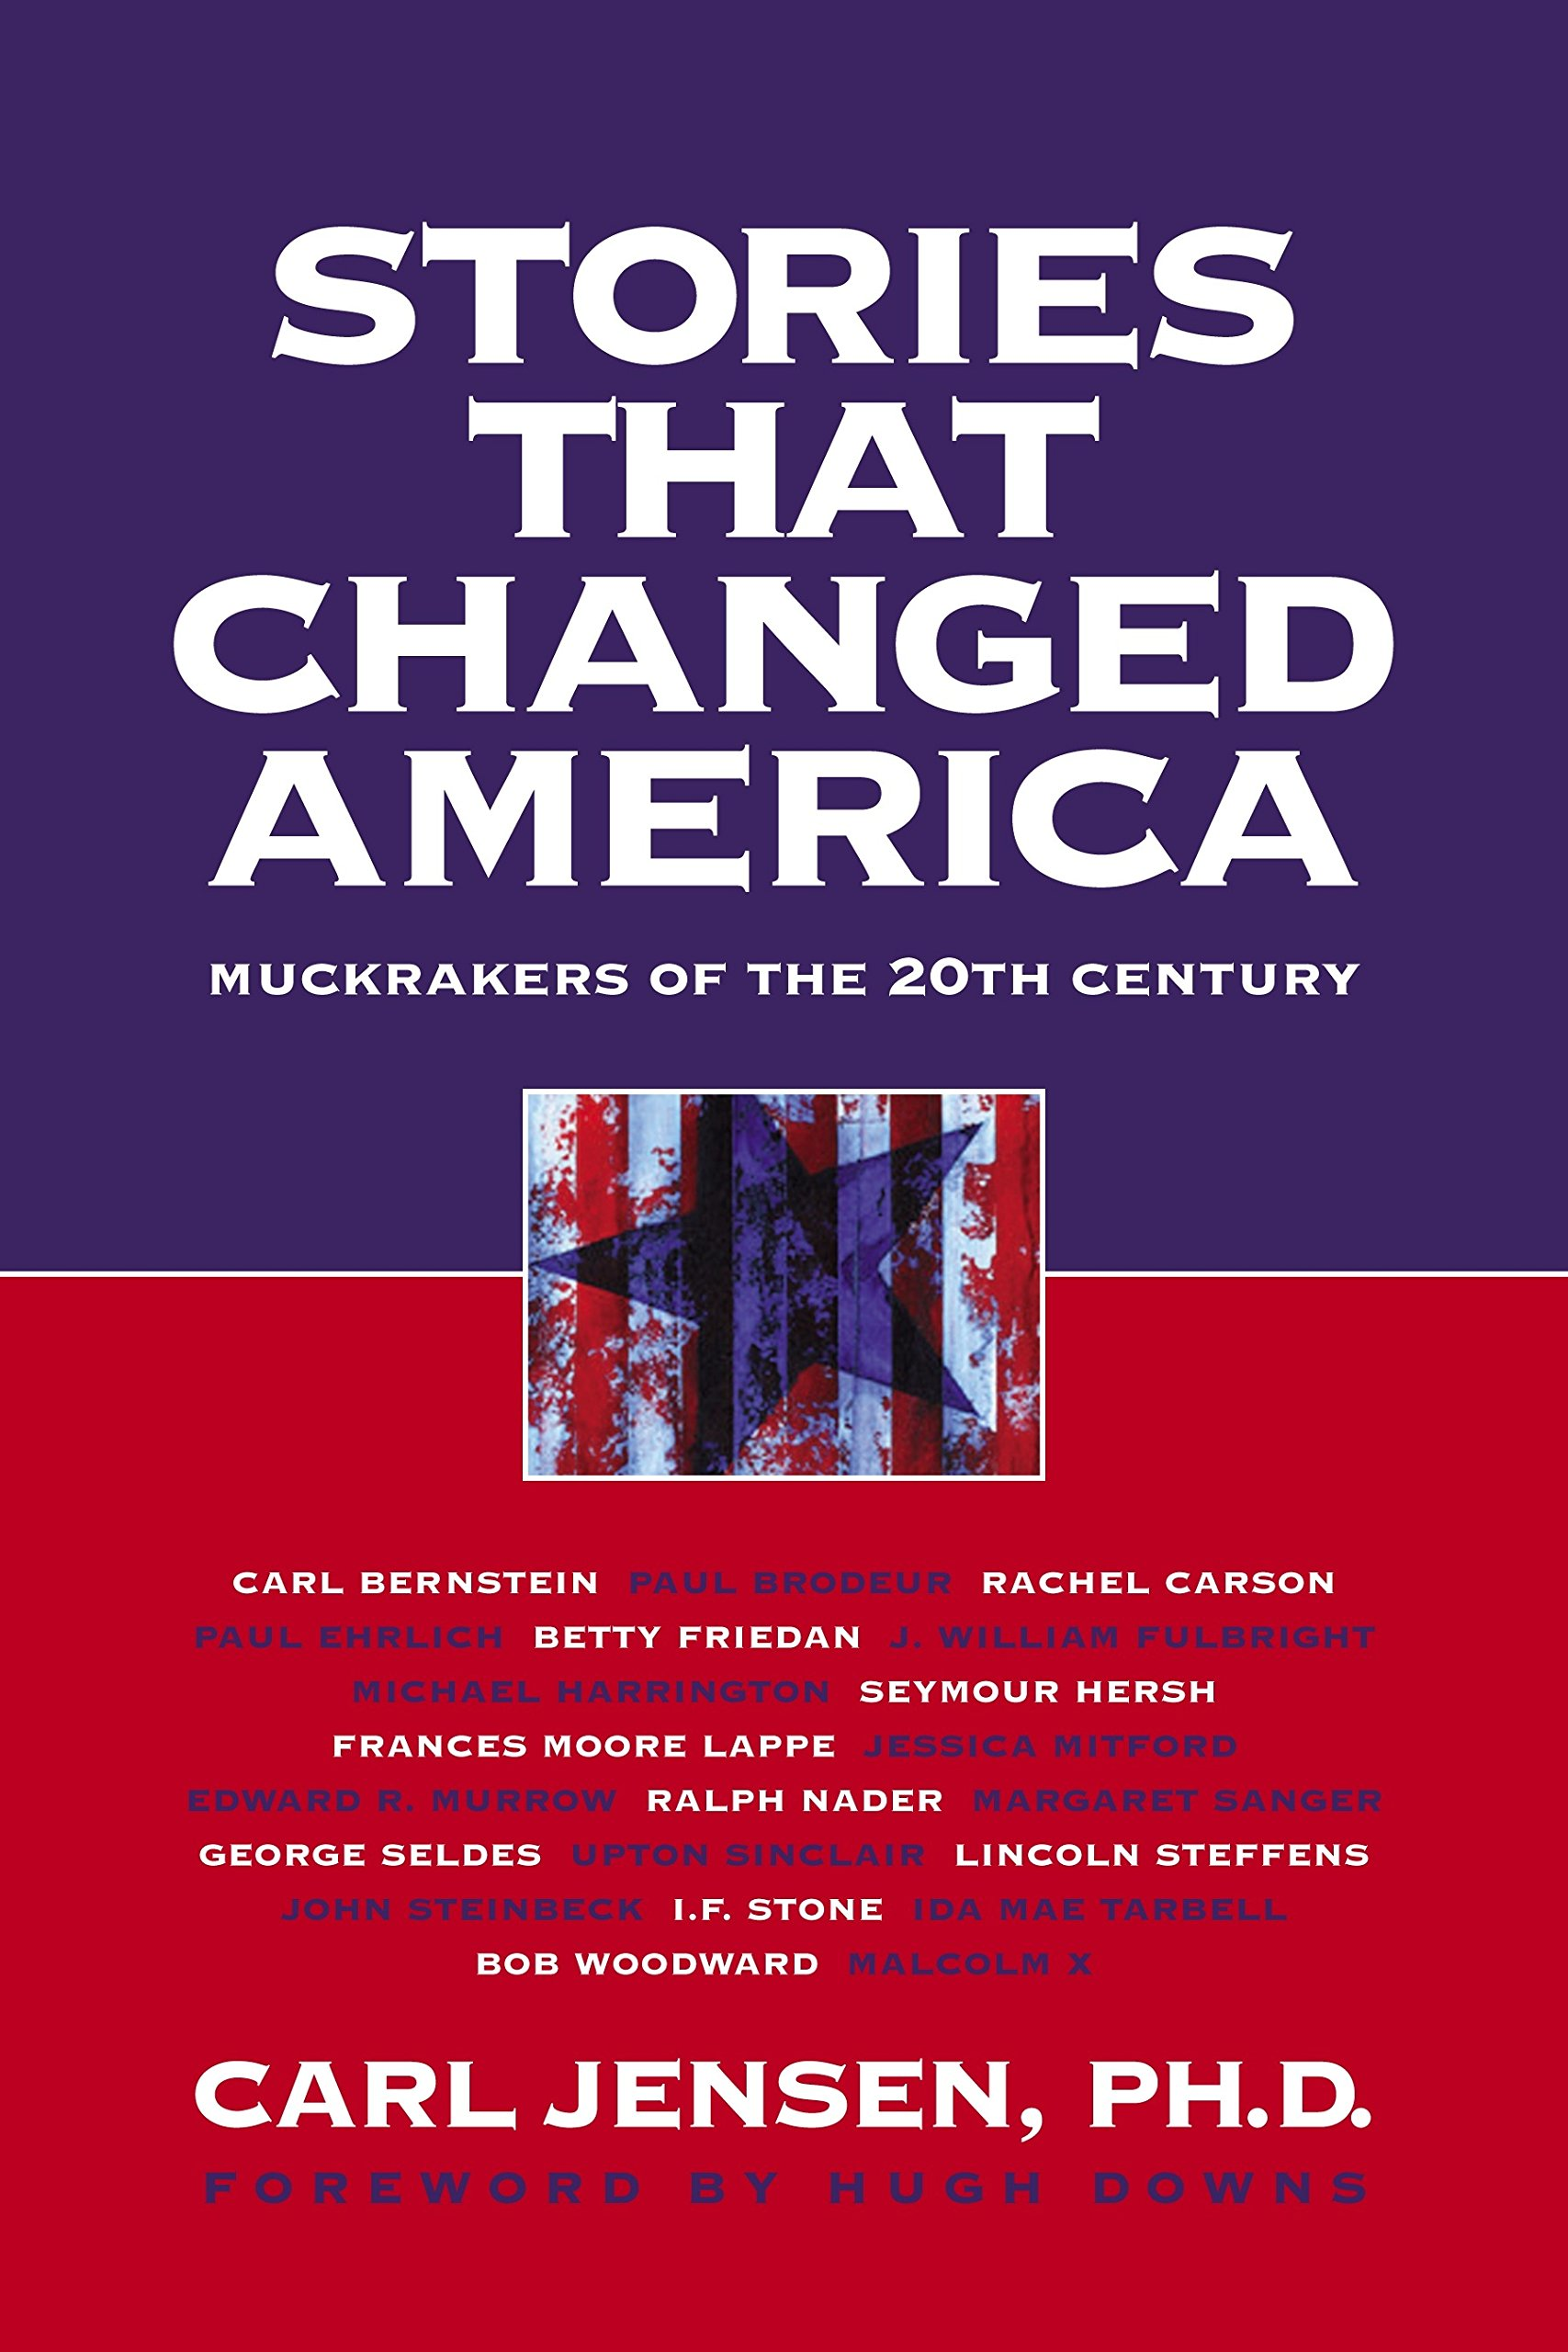 Stories that changed america muckrakers of the 20th century carl stories that changed america muckrakers of the 20th century carl jensen hugh downs 9781583225172 amazon books fandeluxe